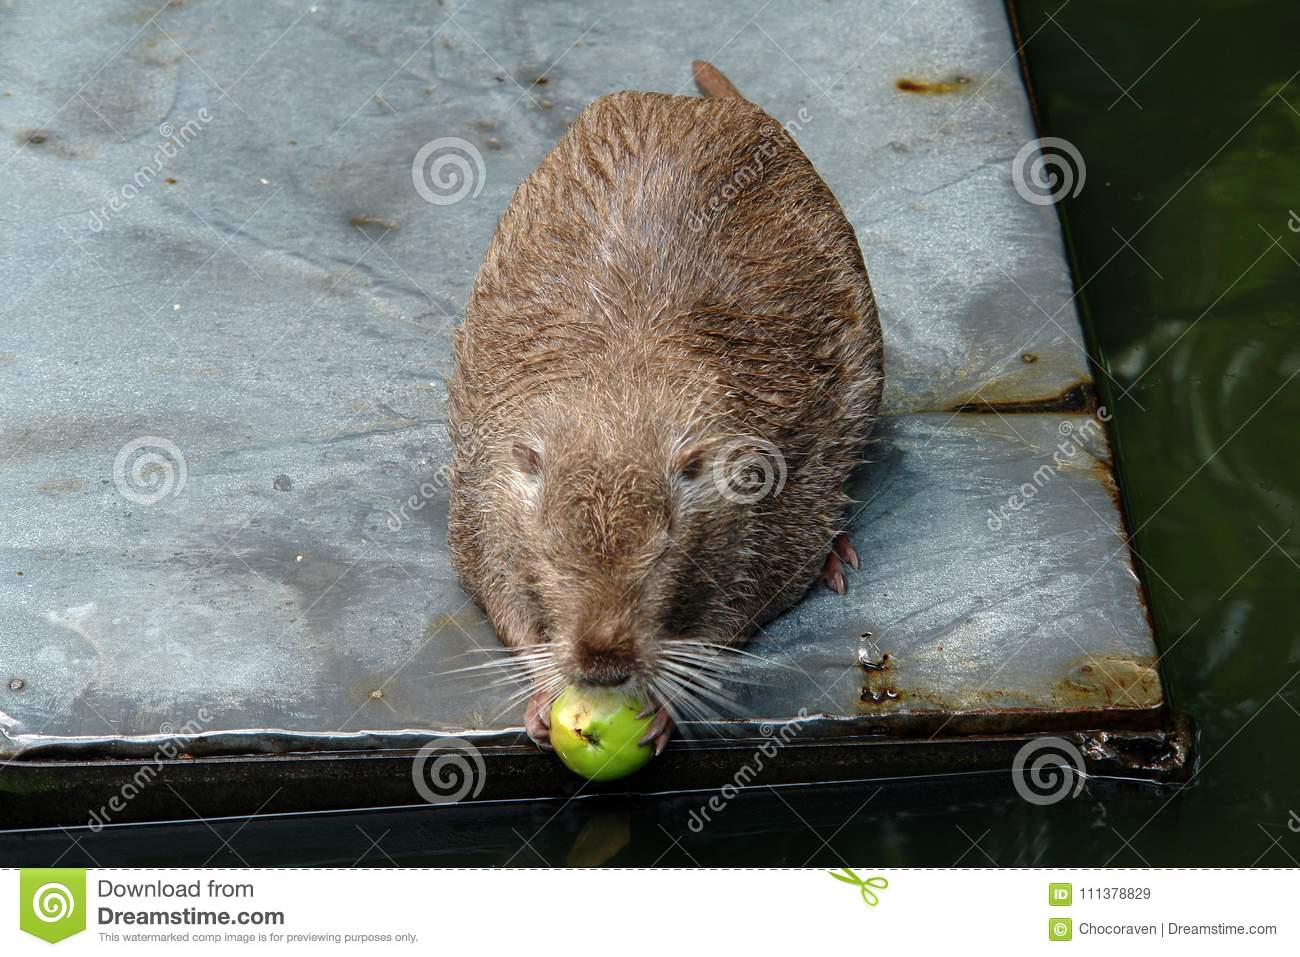 Rat nutria chewing on an Apple.